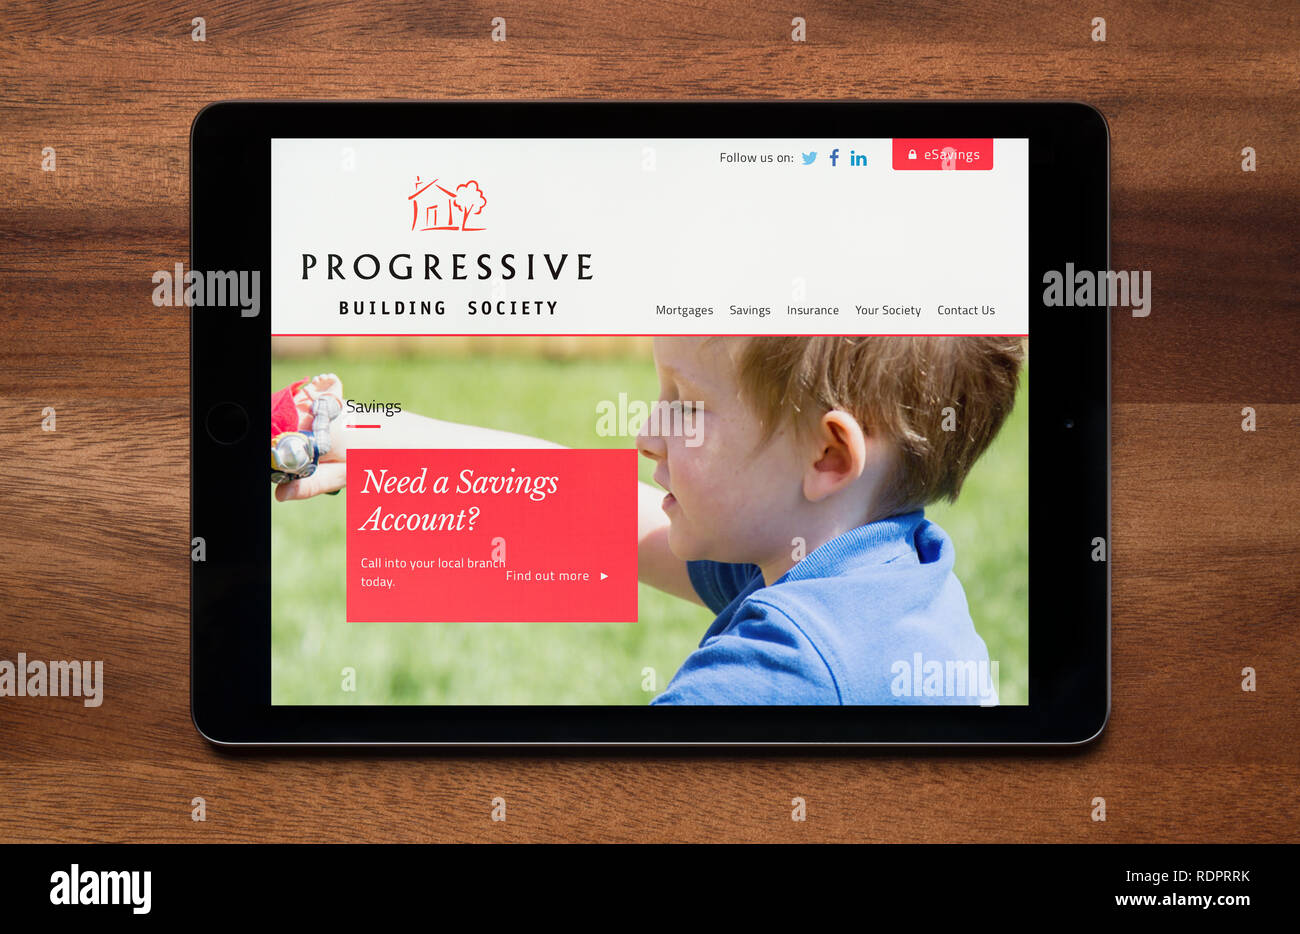 The website of Progressive Building Society is seen on an iPad tablet, which is resting on a wooden table (Editorial use only). - Stock Image